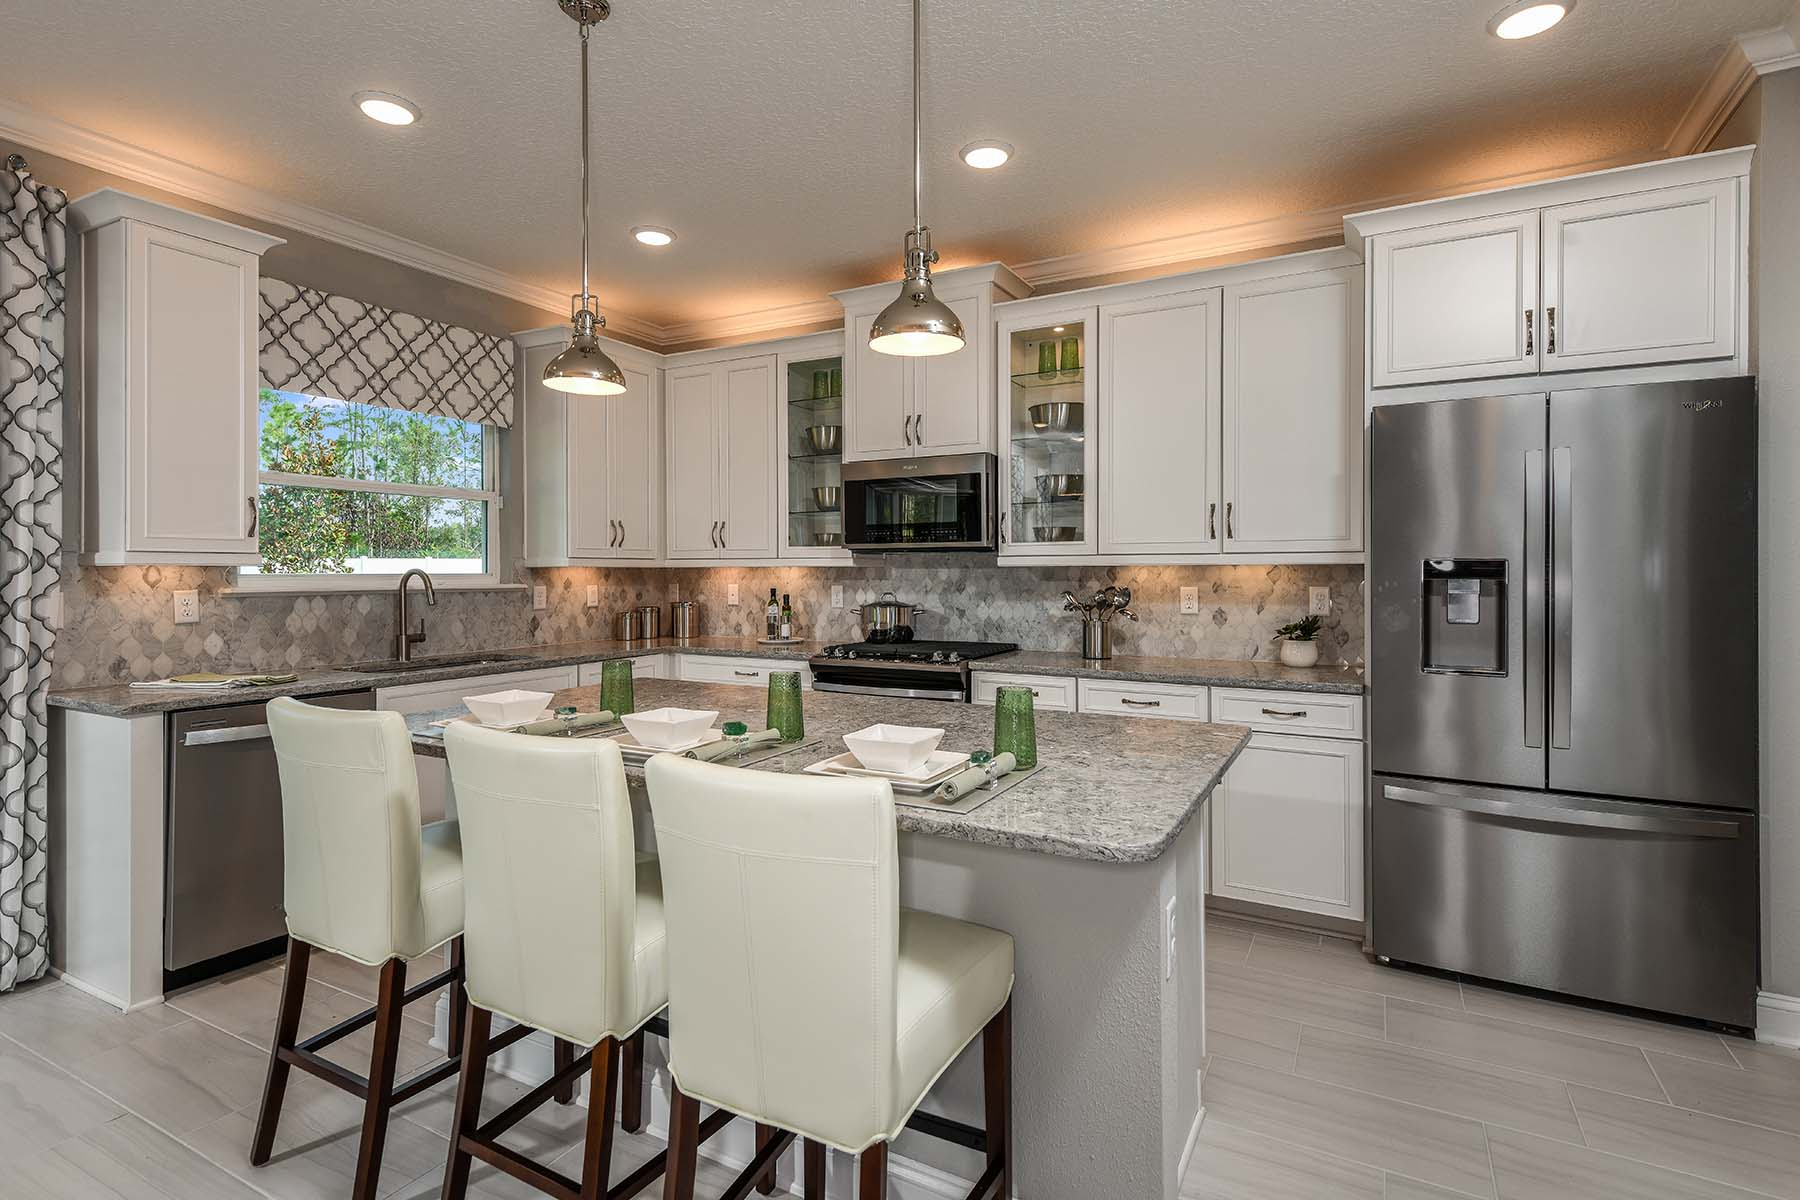 Turner Plan Kitchen at RiverTown - Haven in St. Johns Florida by Mattamy Homes